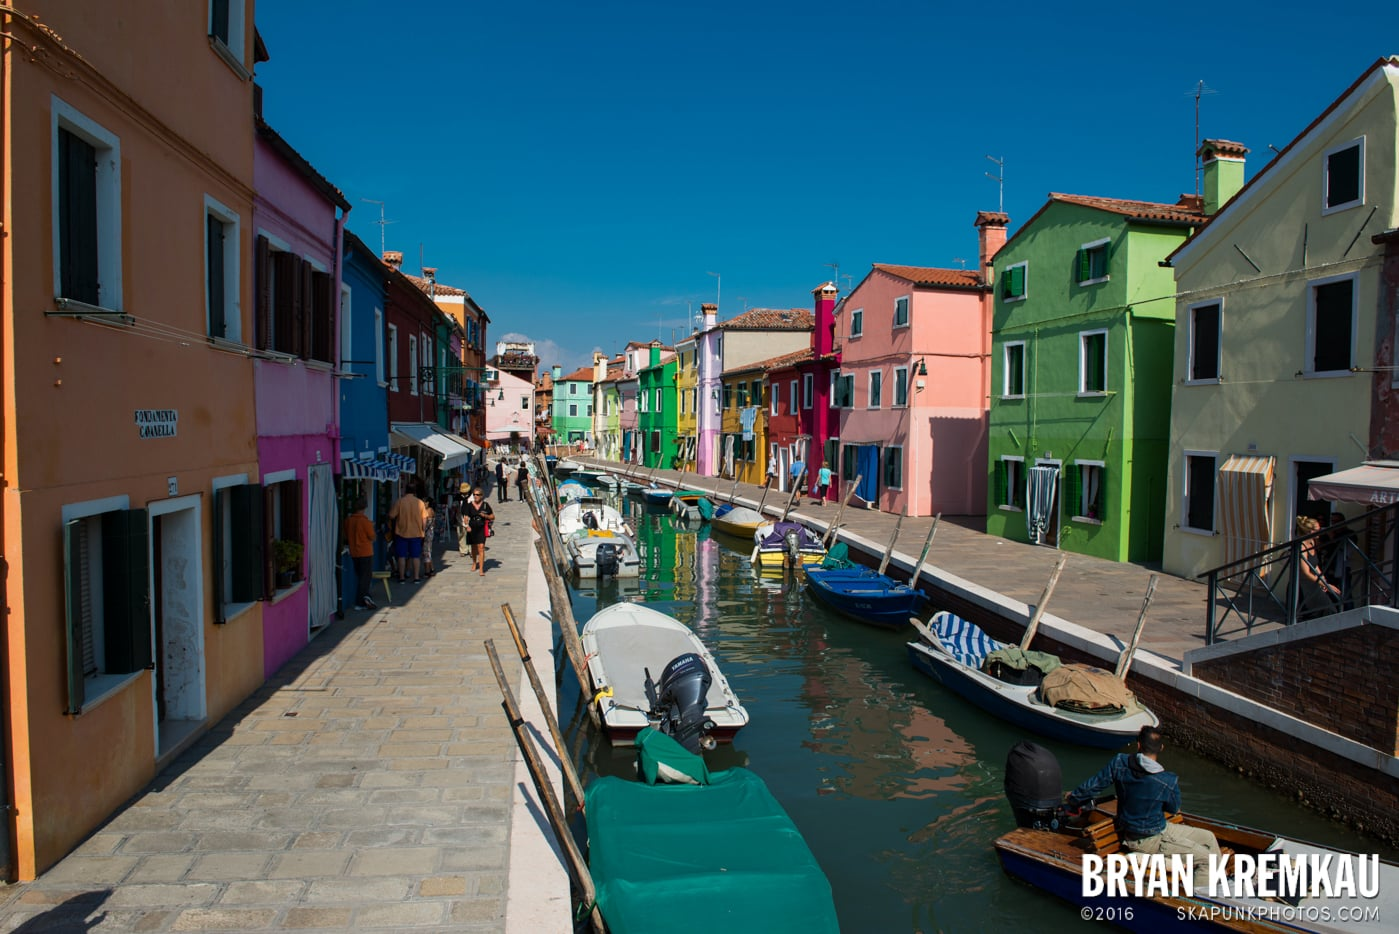 Italy Vacation - Day 6: Murano, Burano, Venice - 9.14.13 (21)